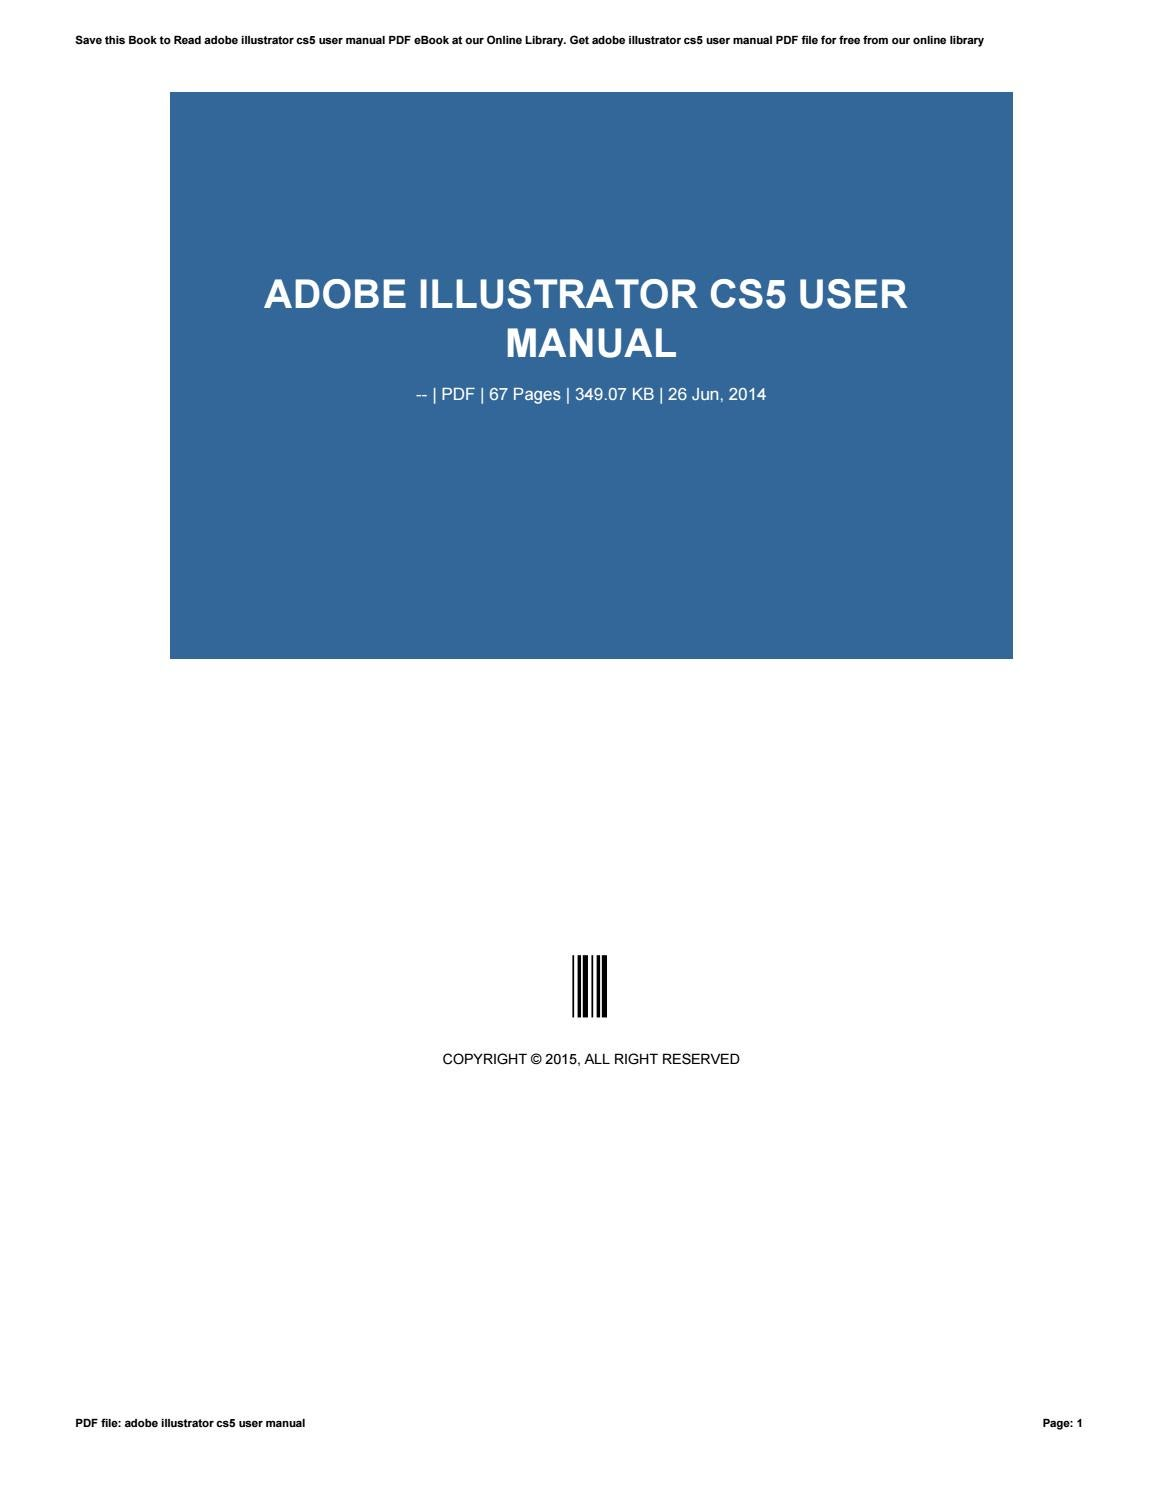 Free adobe illustrator manual ebook array adobe illustrator cs5 user manual by squirtsnap51 issuu rh issuu fandeluxe Image collections